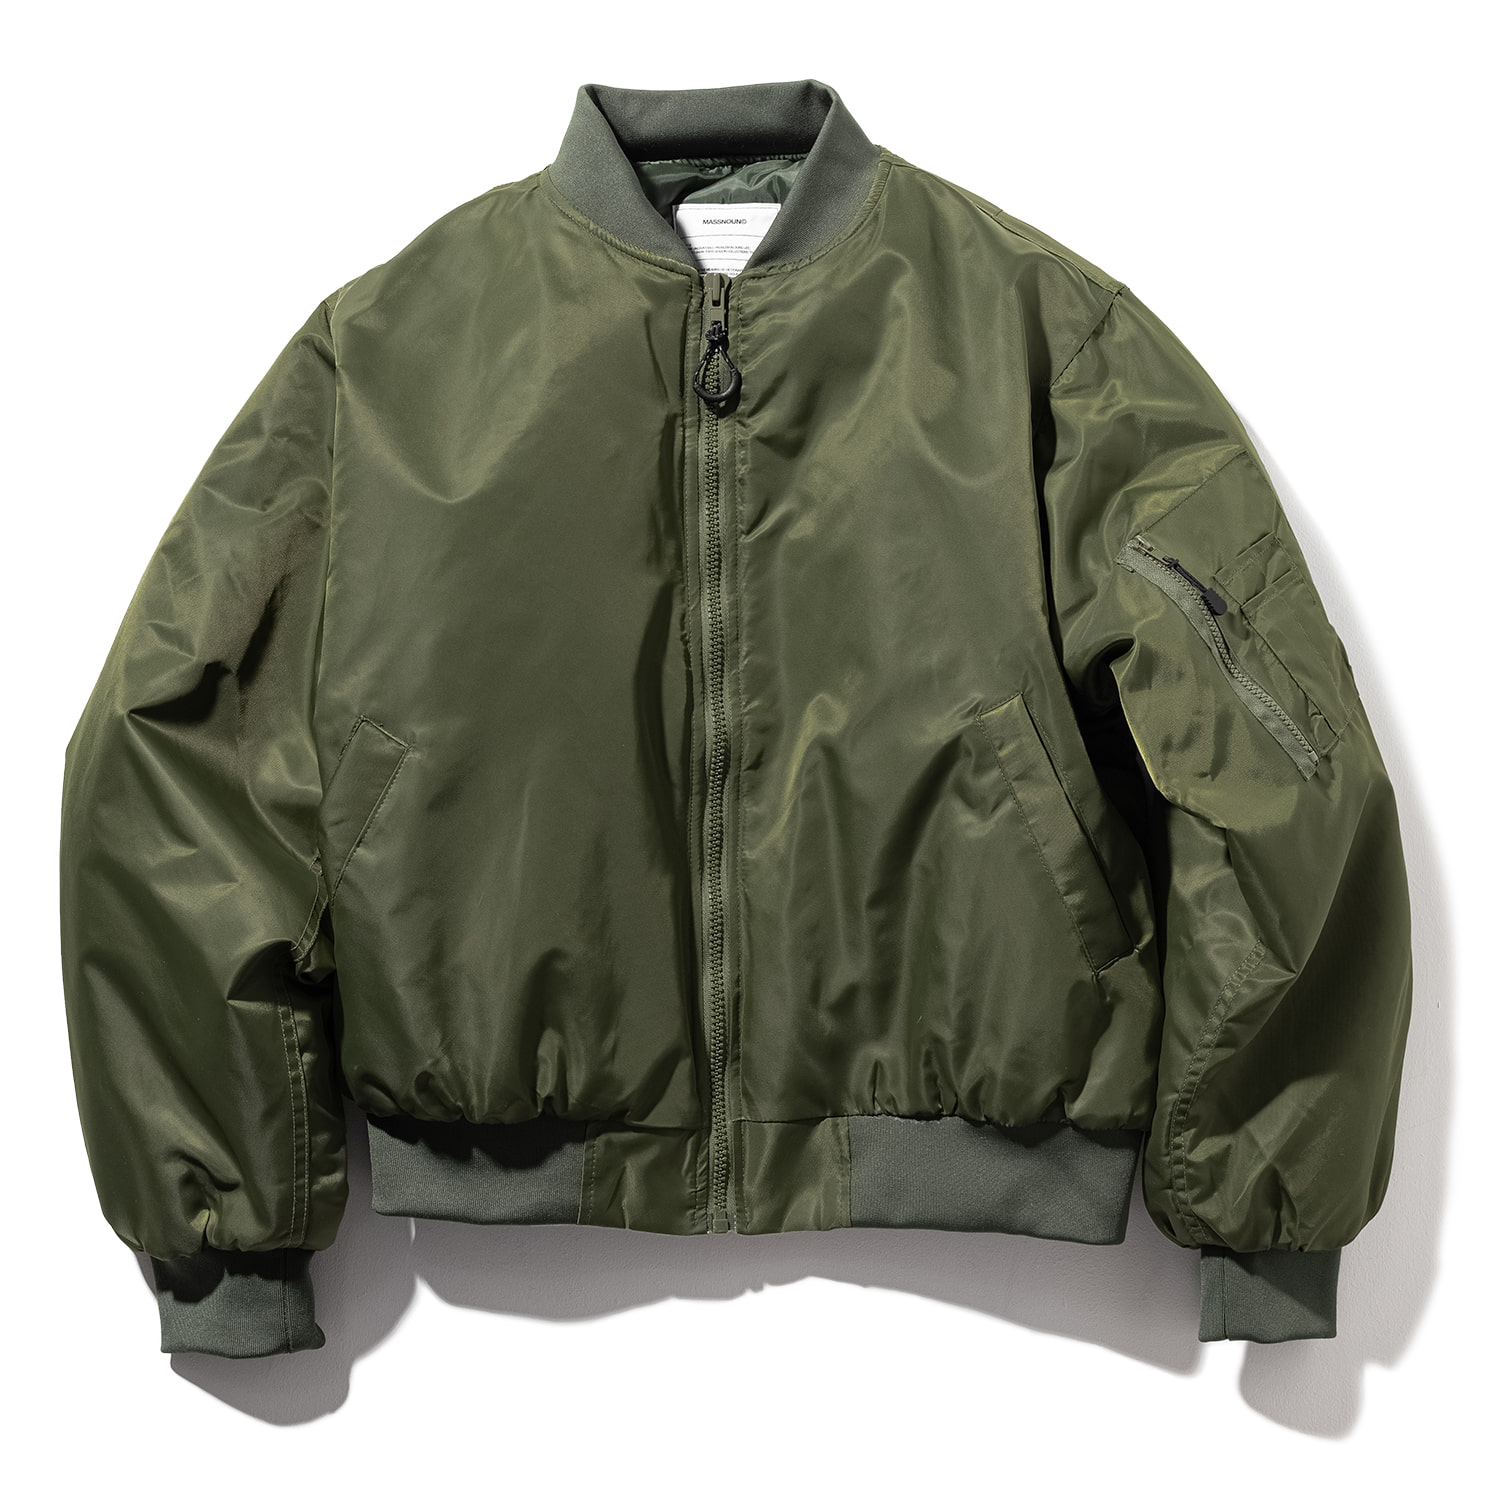 8OZ OVERSIZED MA-1 JACKET MFZPD003-KK